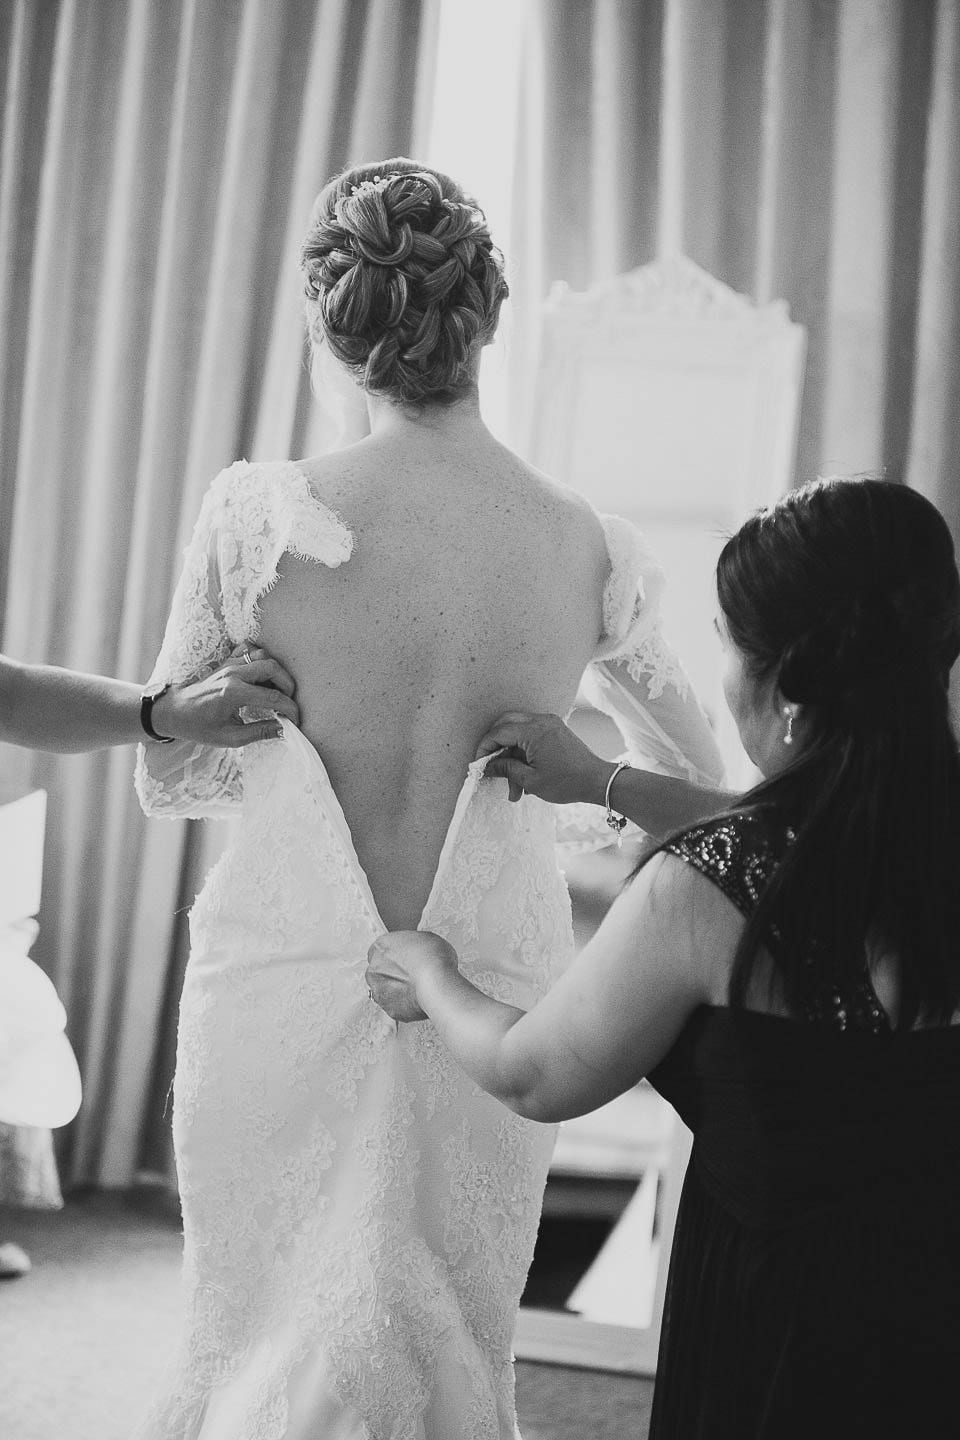 Bride being helped into her wedding dress at Bath Spa Hotel